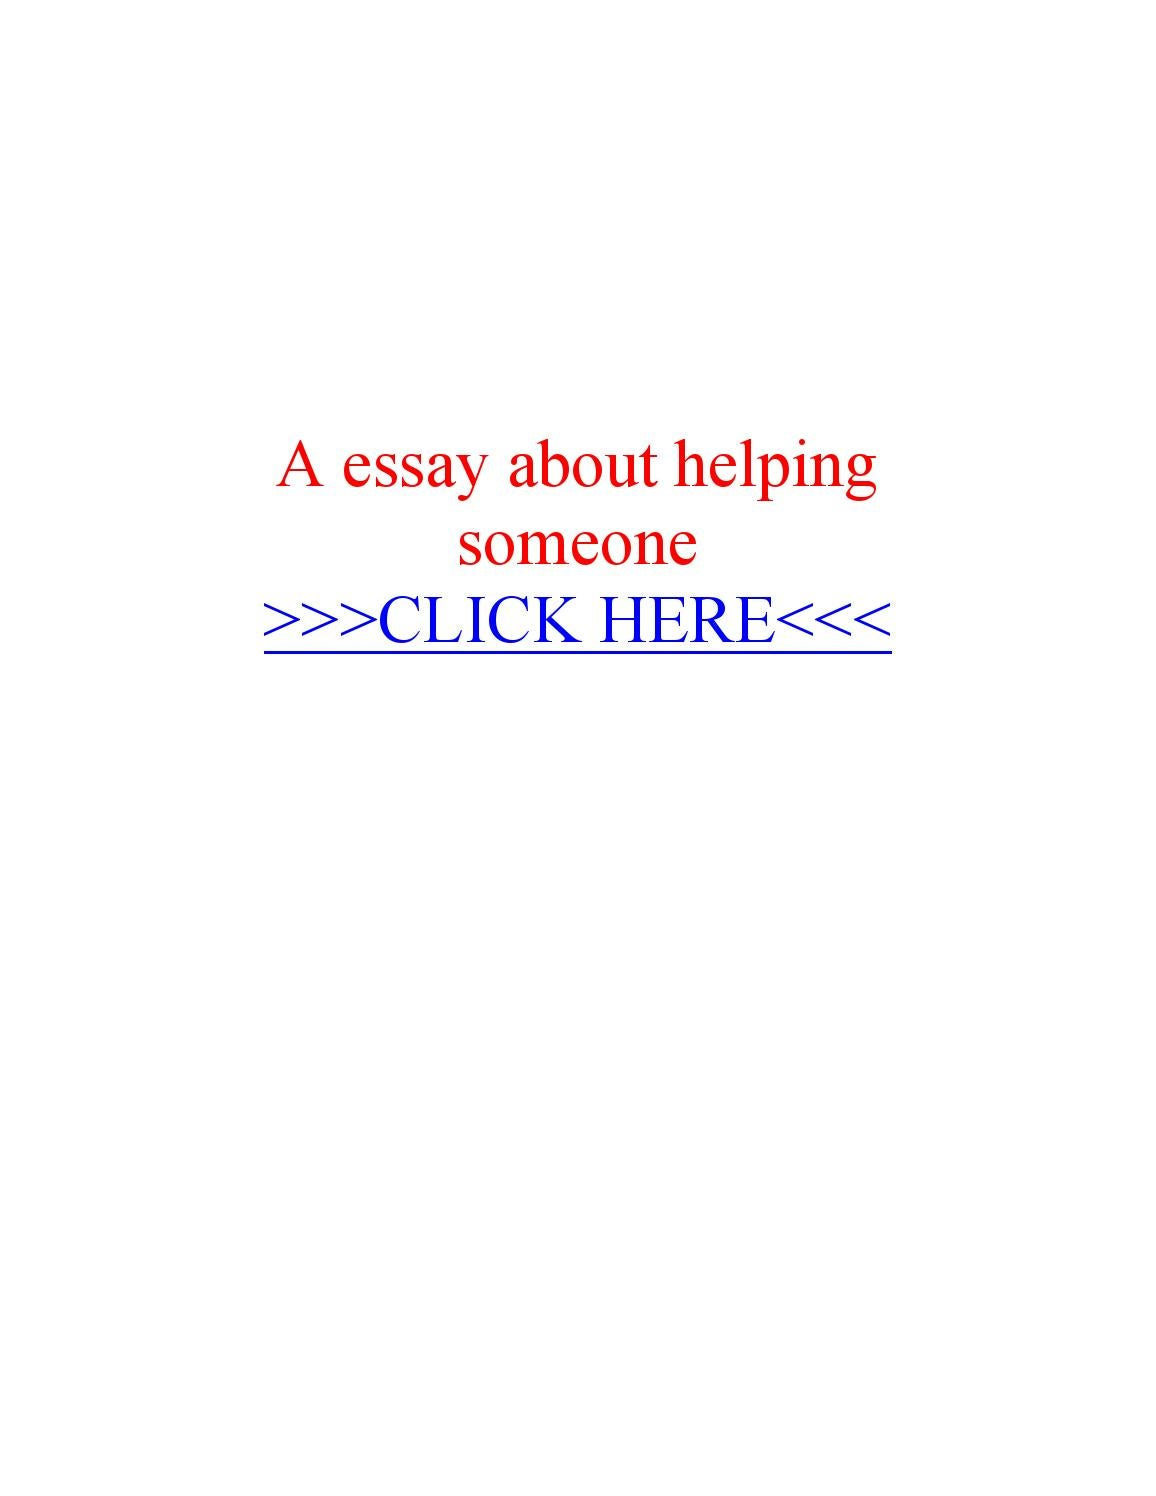 Essay on helping someone